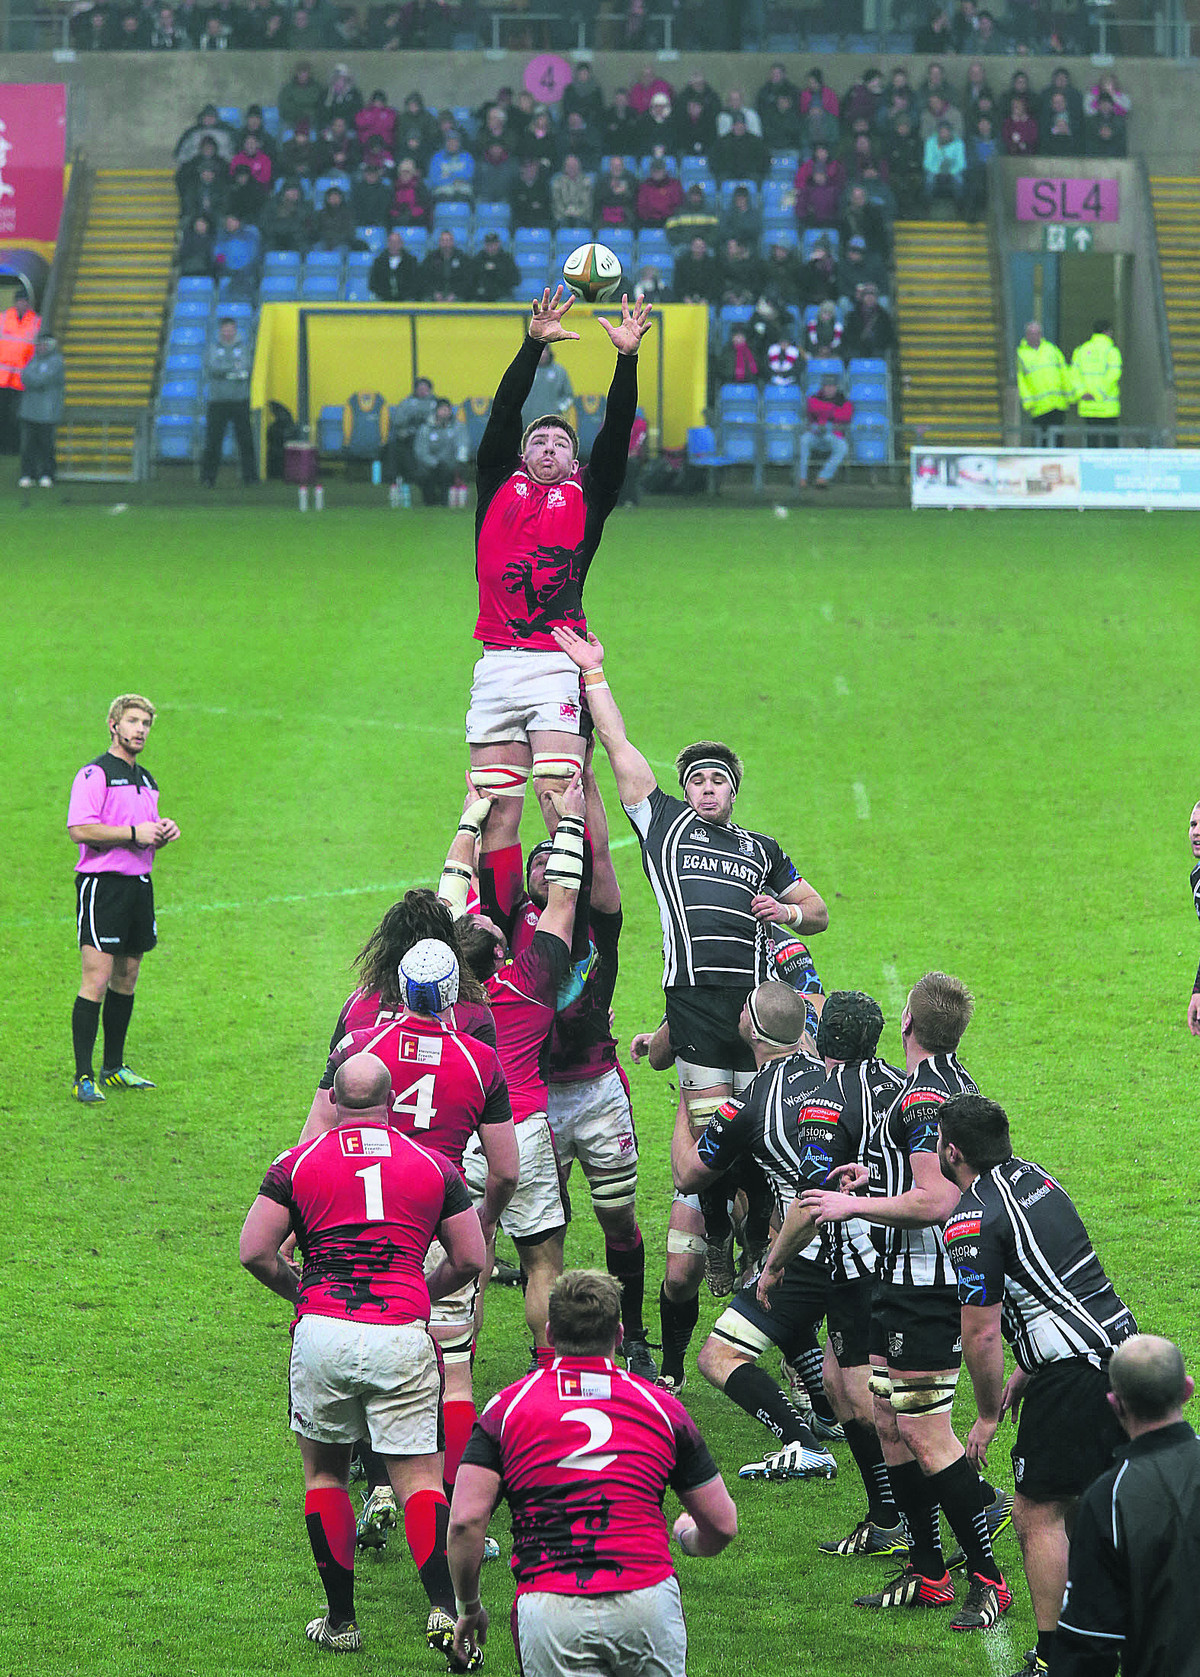 Ollie Stedman, pictured winning a line-out against Pontypridd last weekend, is one of only four London